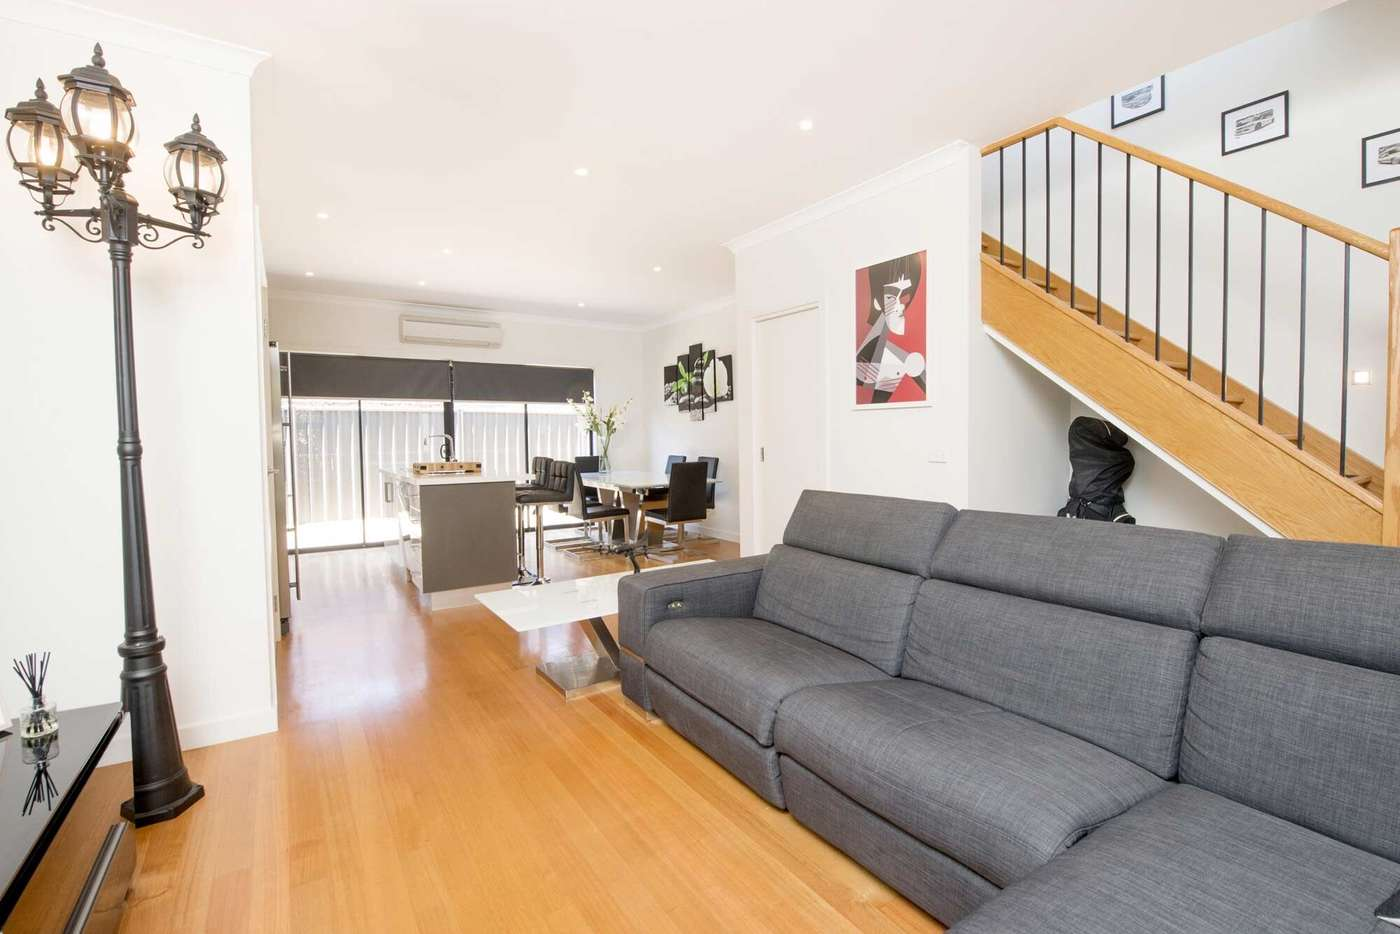 Seventh view of Homely townhouse listing, 54 Walters Avenue, Airport West VIC 3042